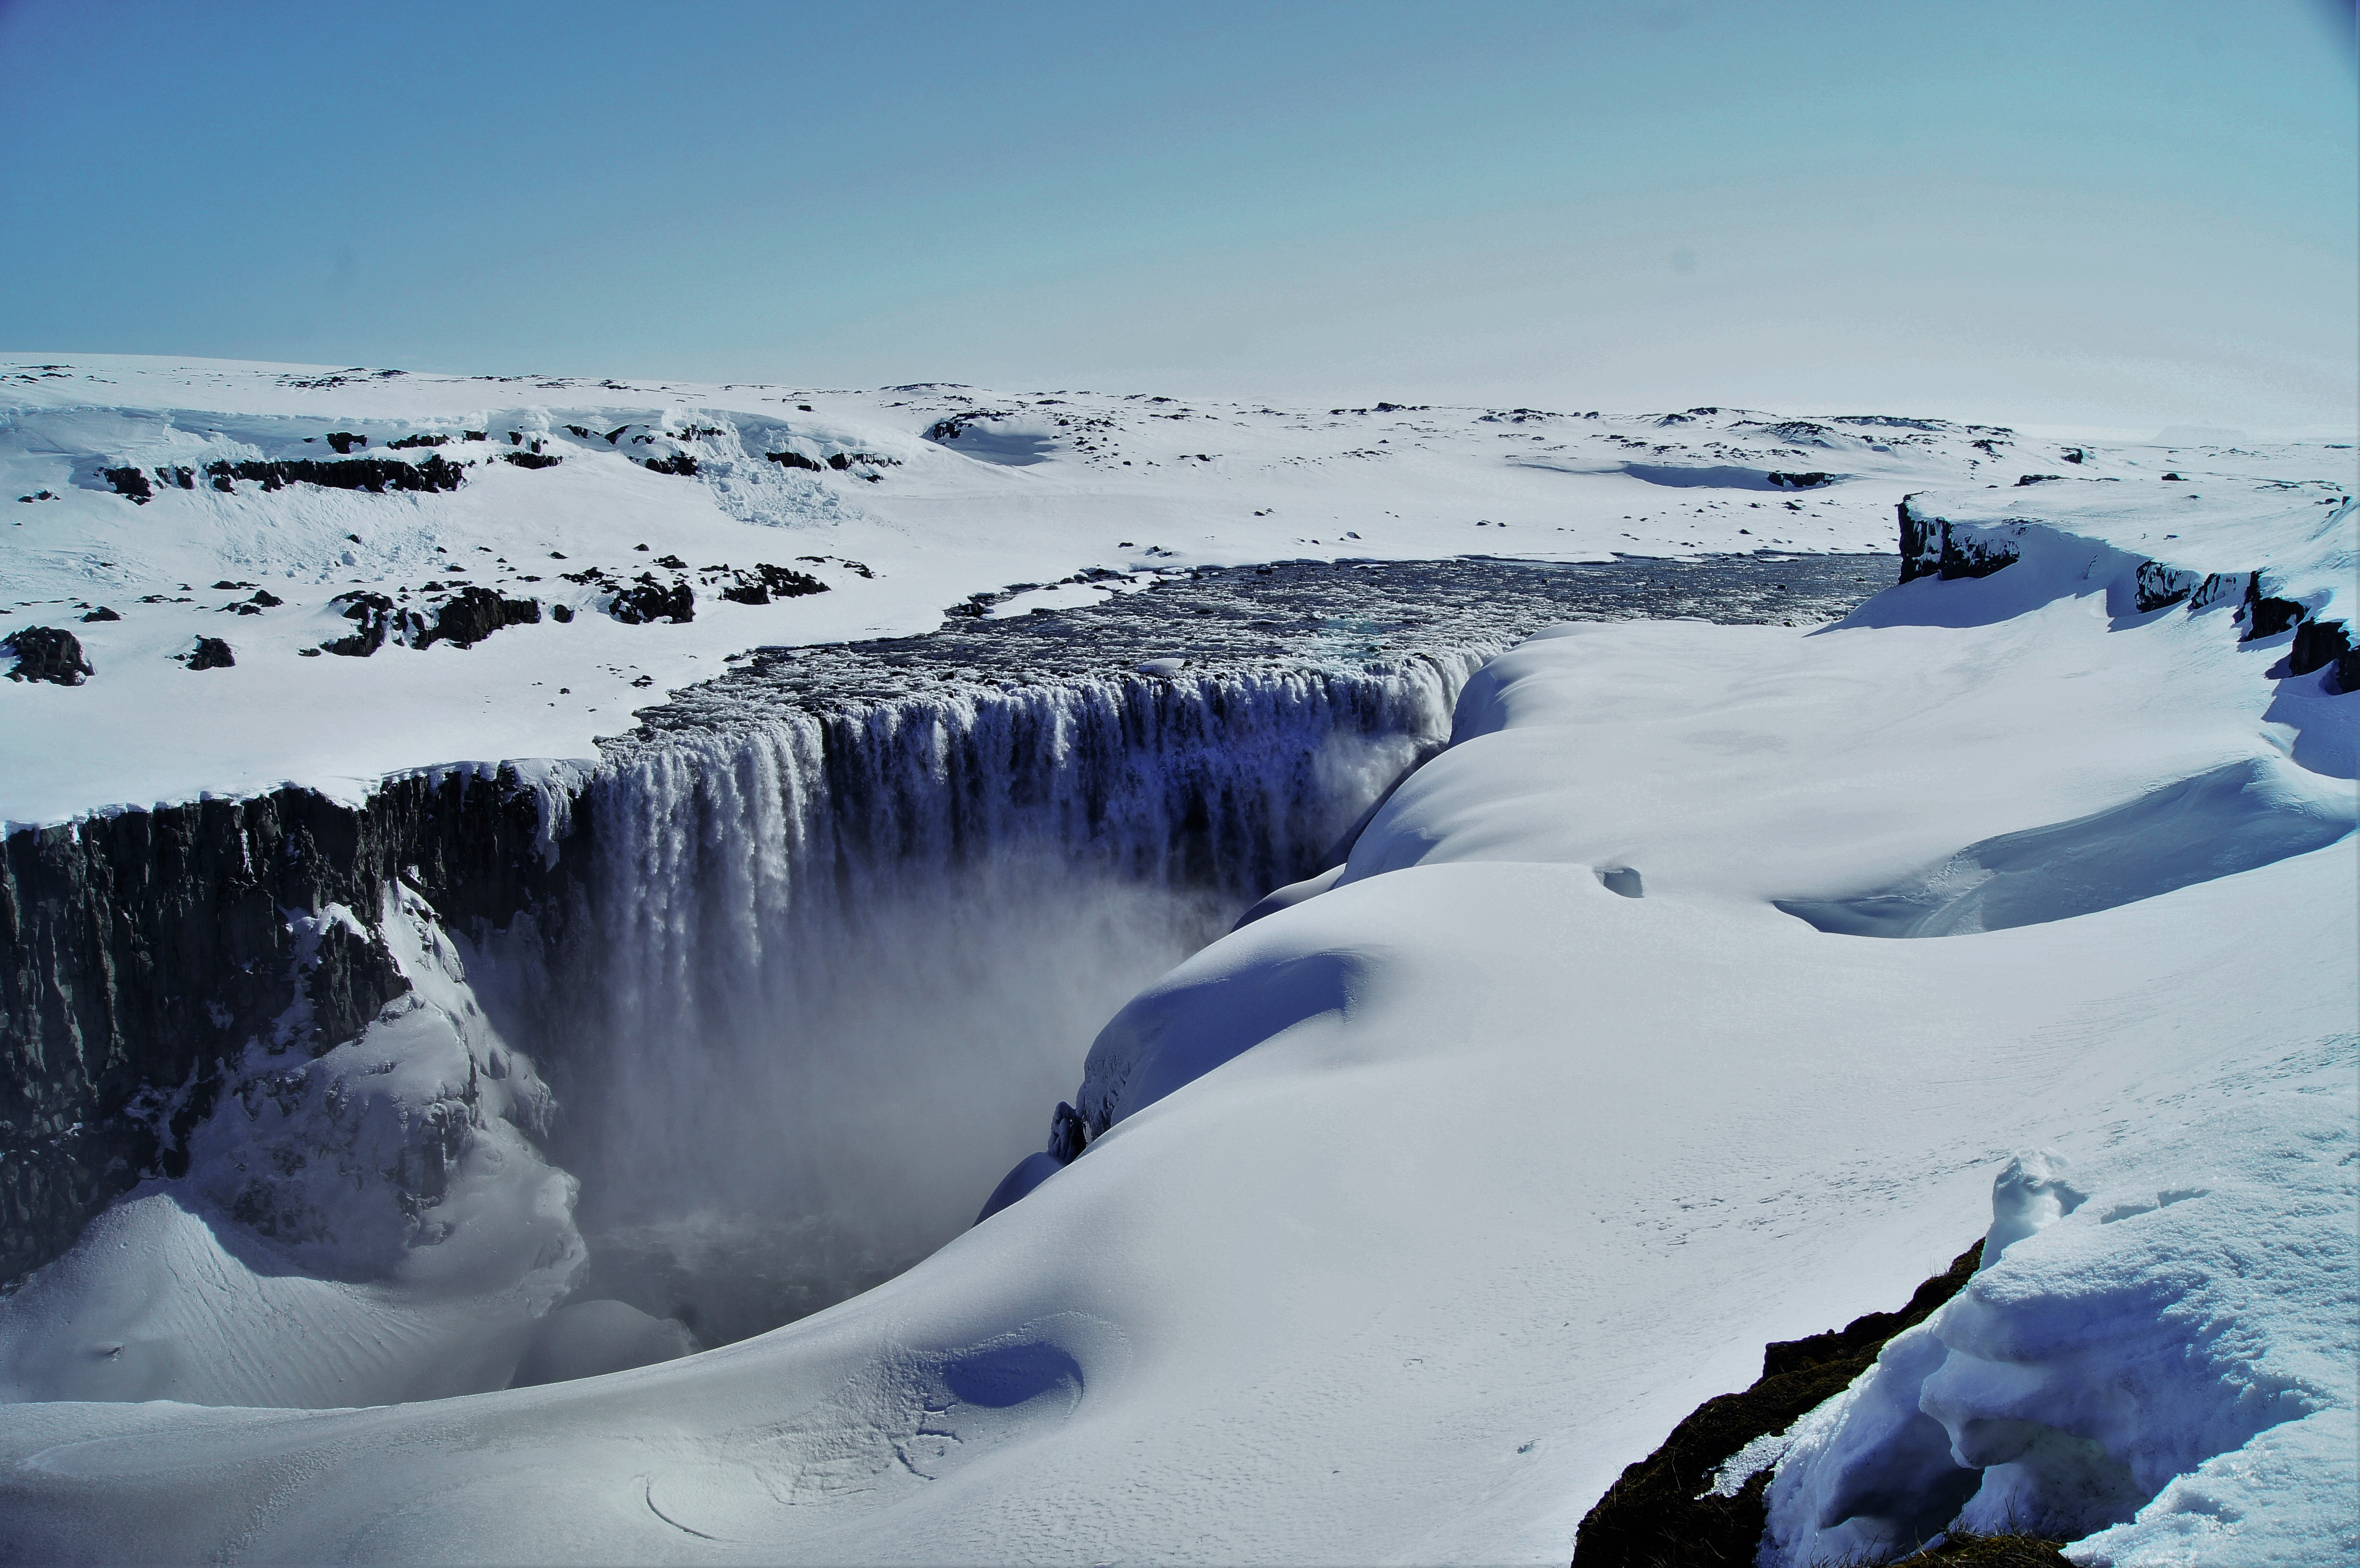 Dettifoss, Europe's most powerful waterfall, as photographed during the wintertime.